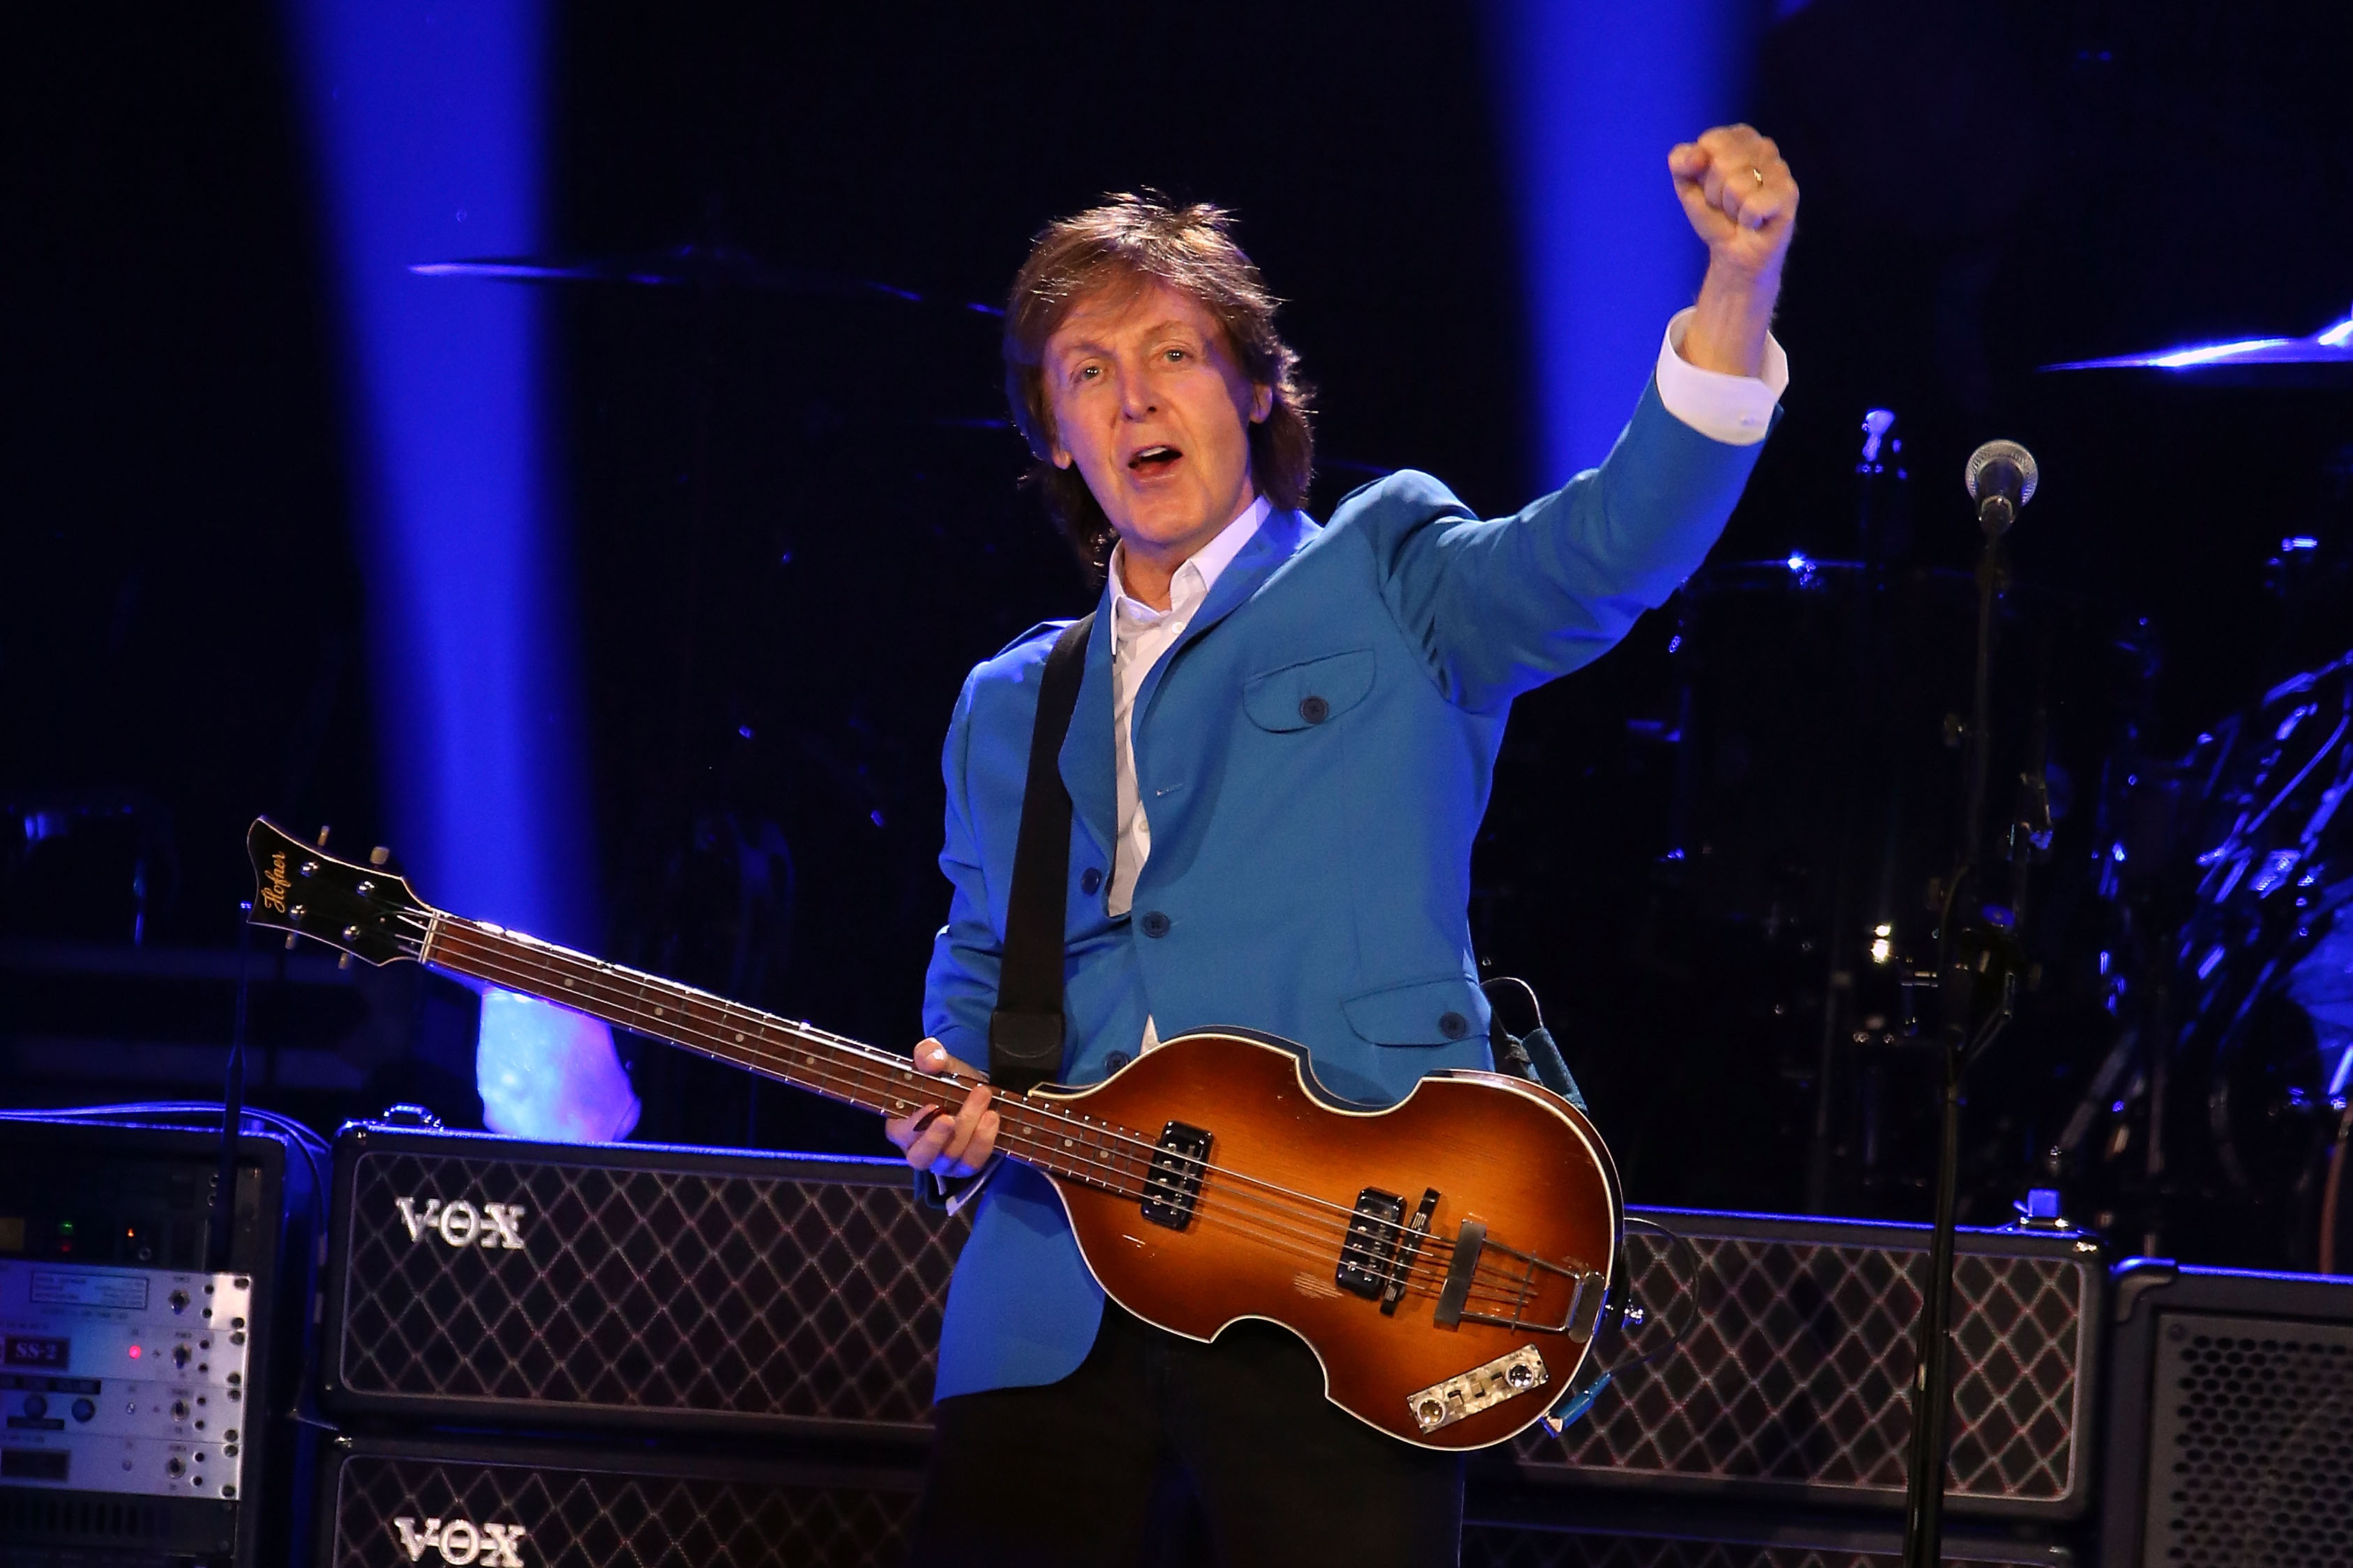 Sir Paul McCartney performs in concert at Times Union Center on July 5, 2014 in Albany, New York.